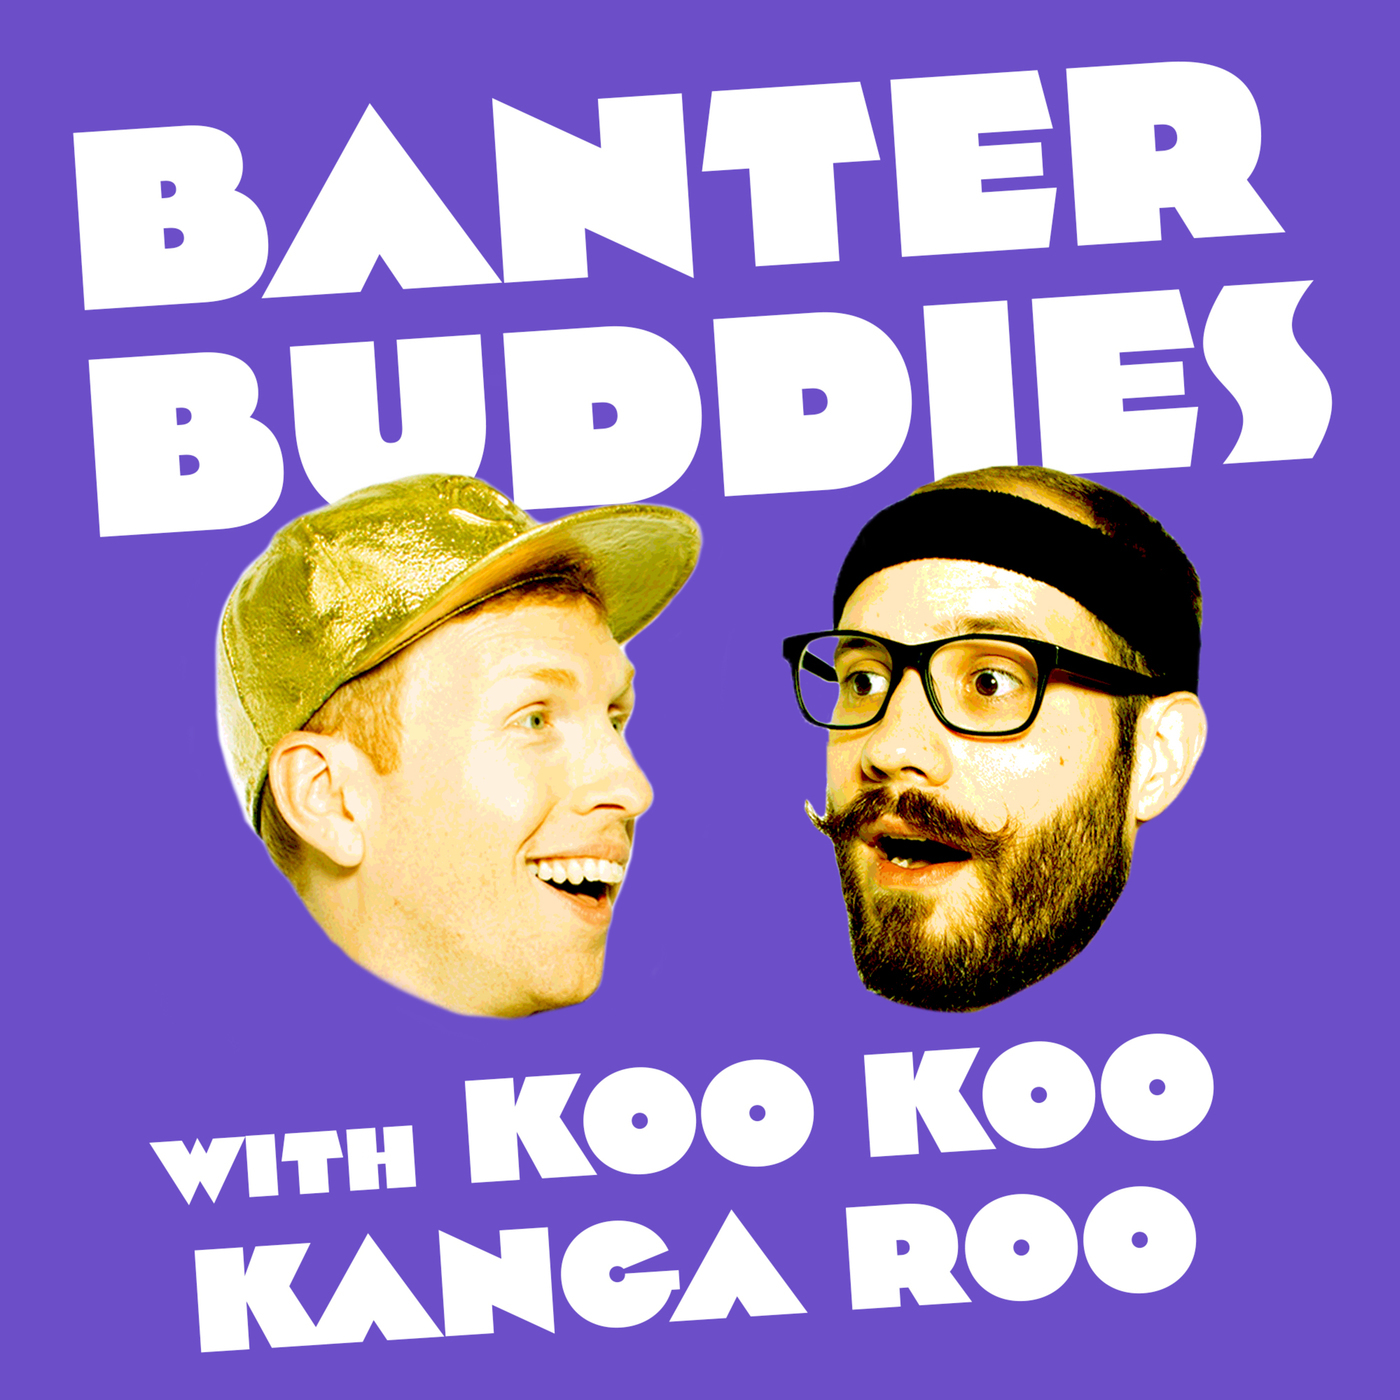 Banter Buddies 1: Pizza is A Canvas